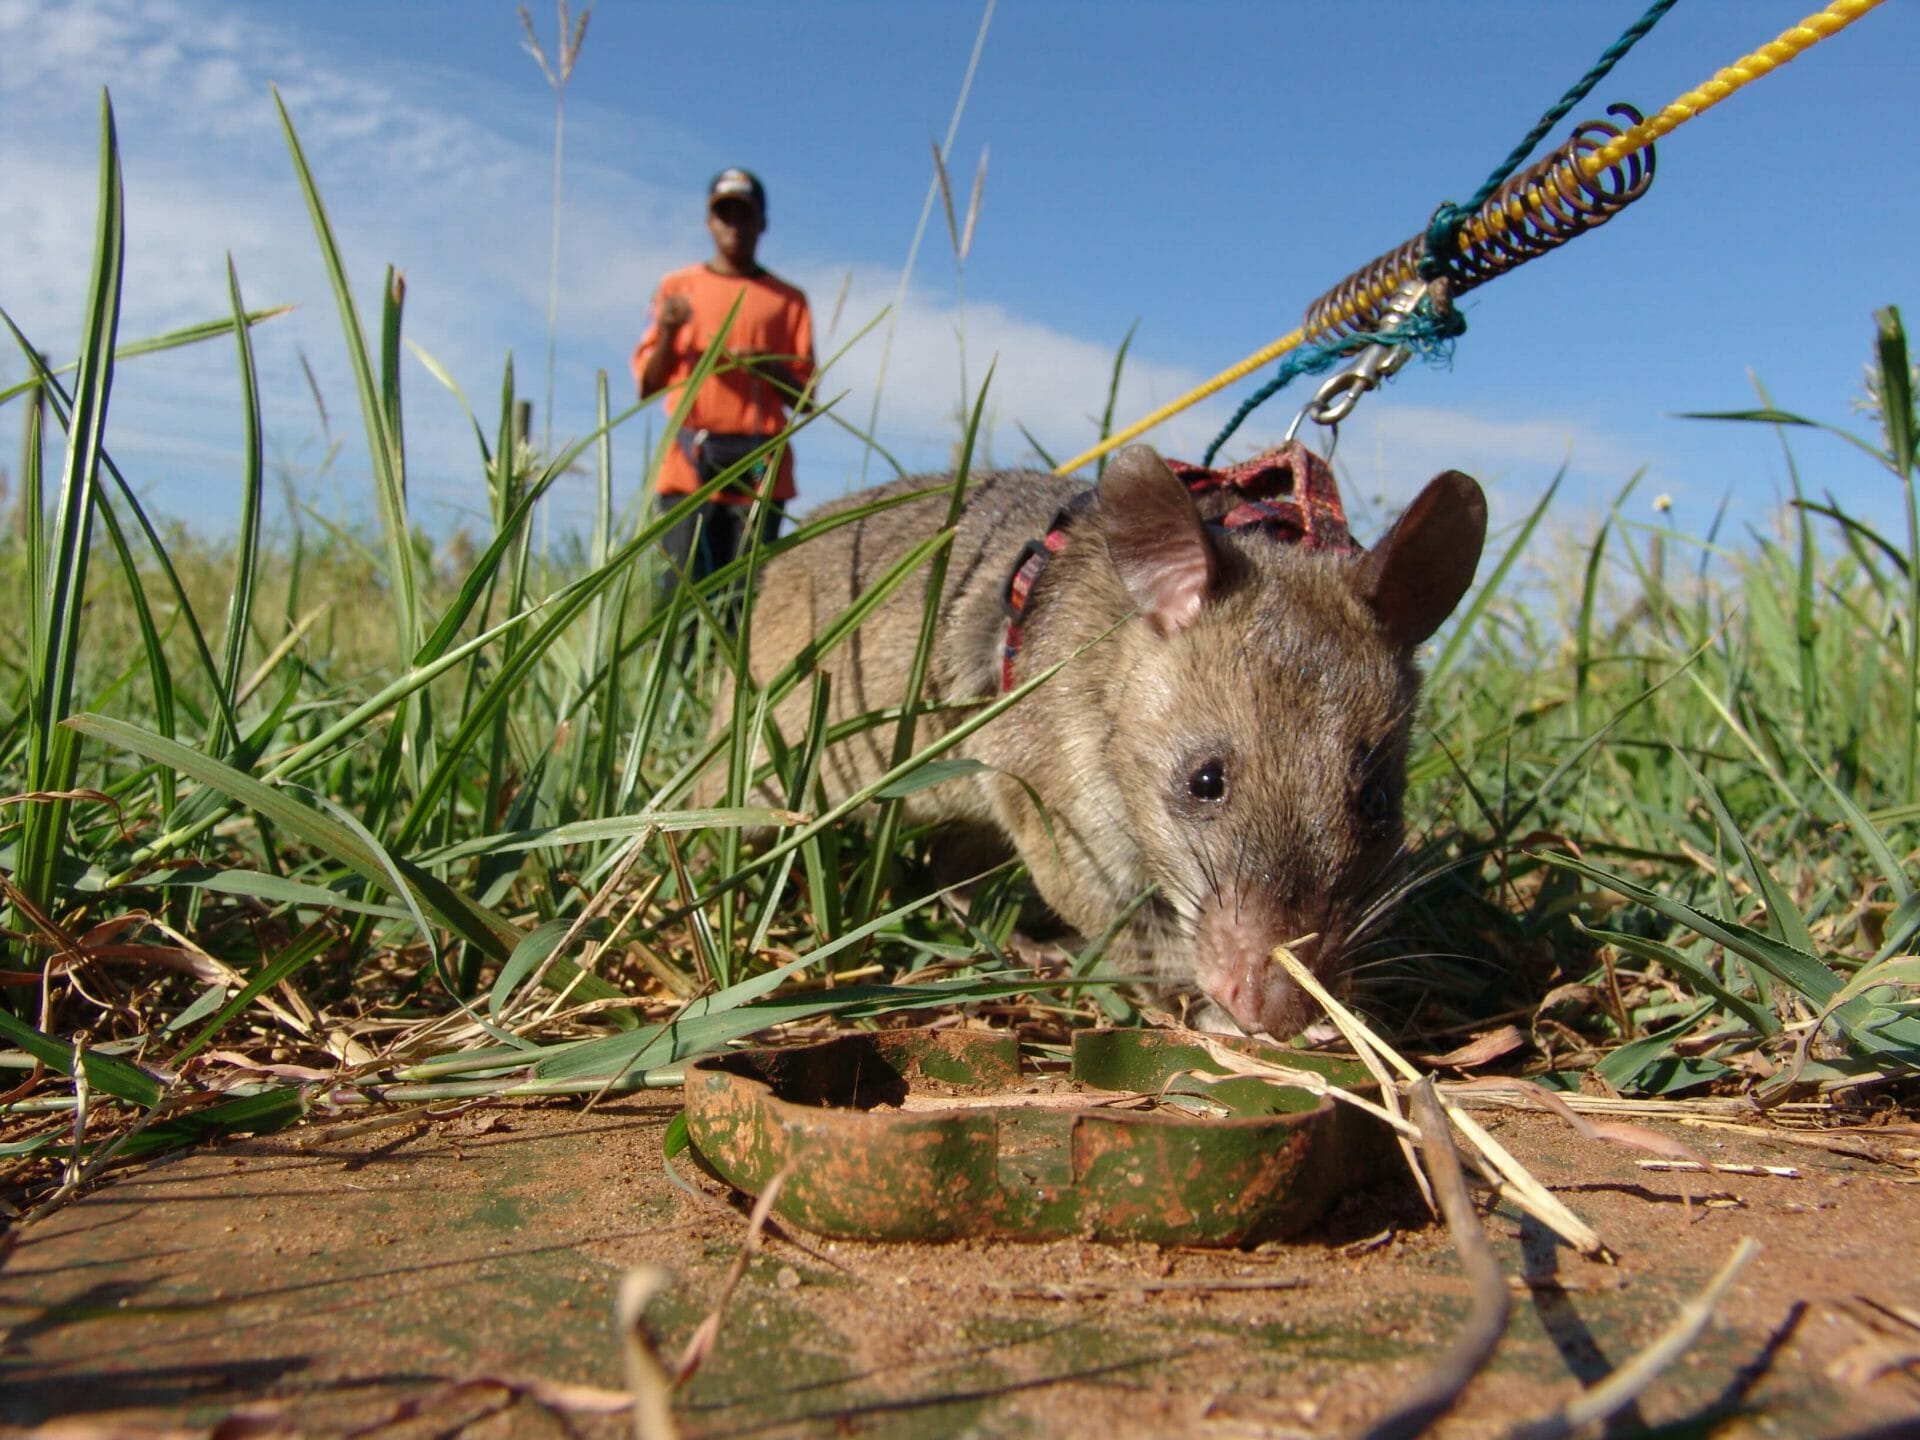 Apopo mine-sweeping rat